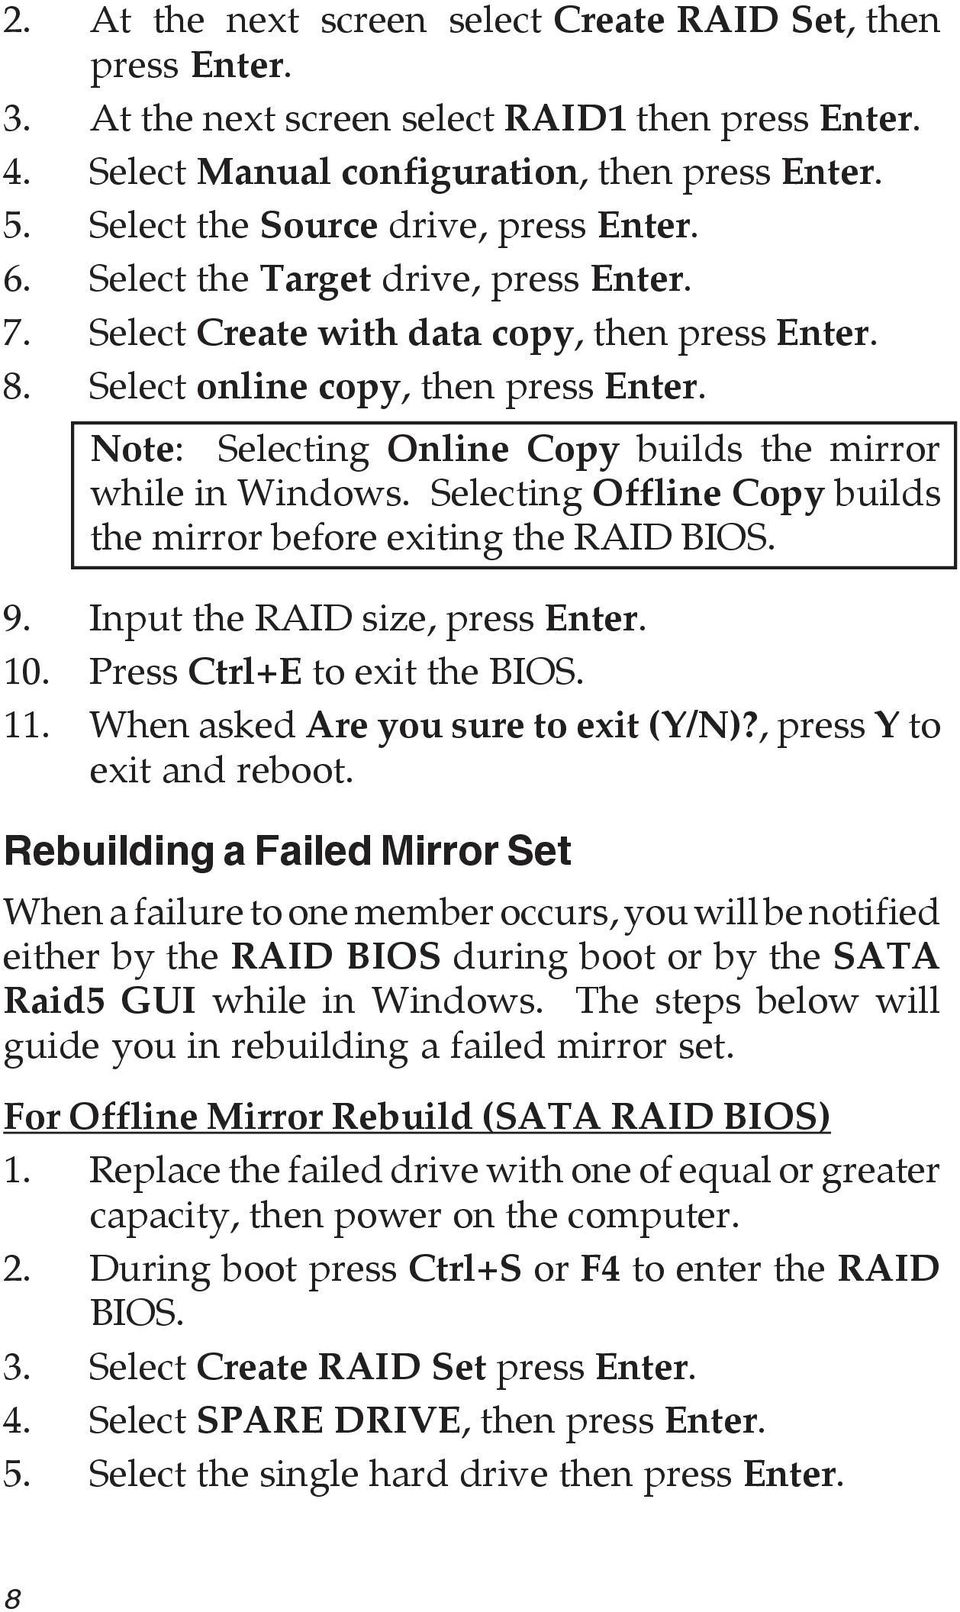 Note: Selecting Online Copy builds the mirror while in Windows. Selecting Offline Copy builds the mirror before exiting the RAID BIOS. 9. Input the RAID size, press Enter. 10.